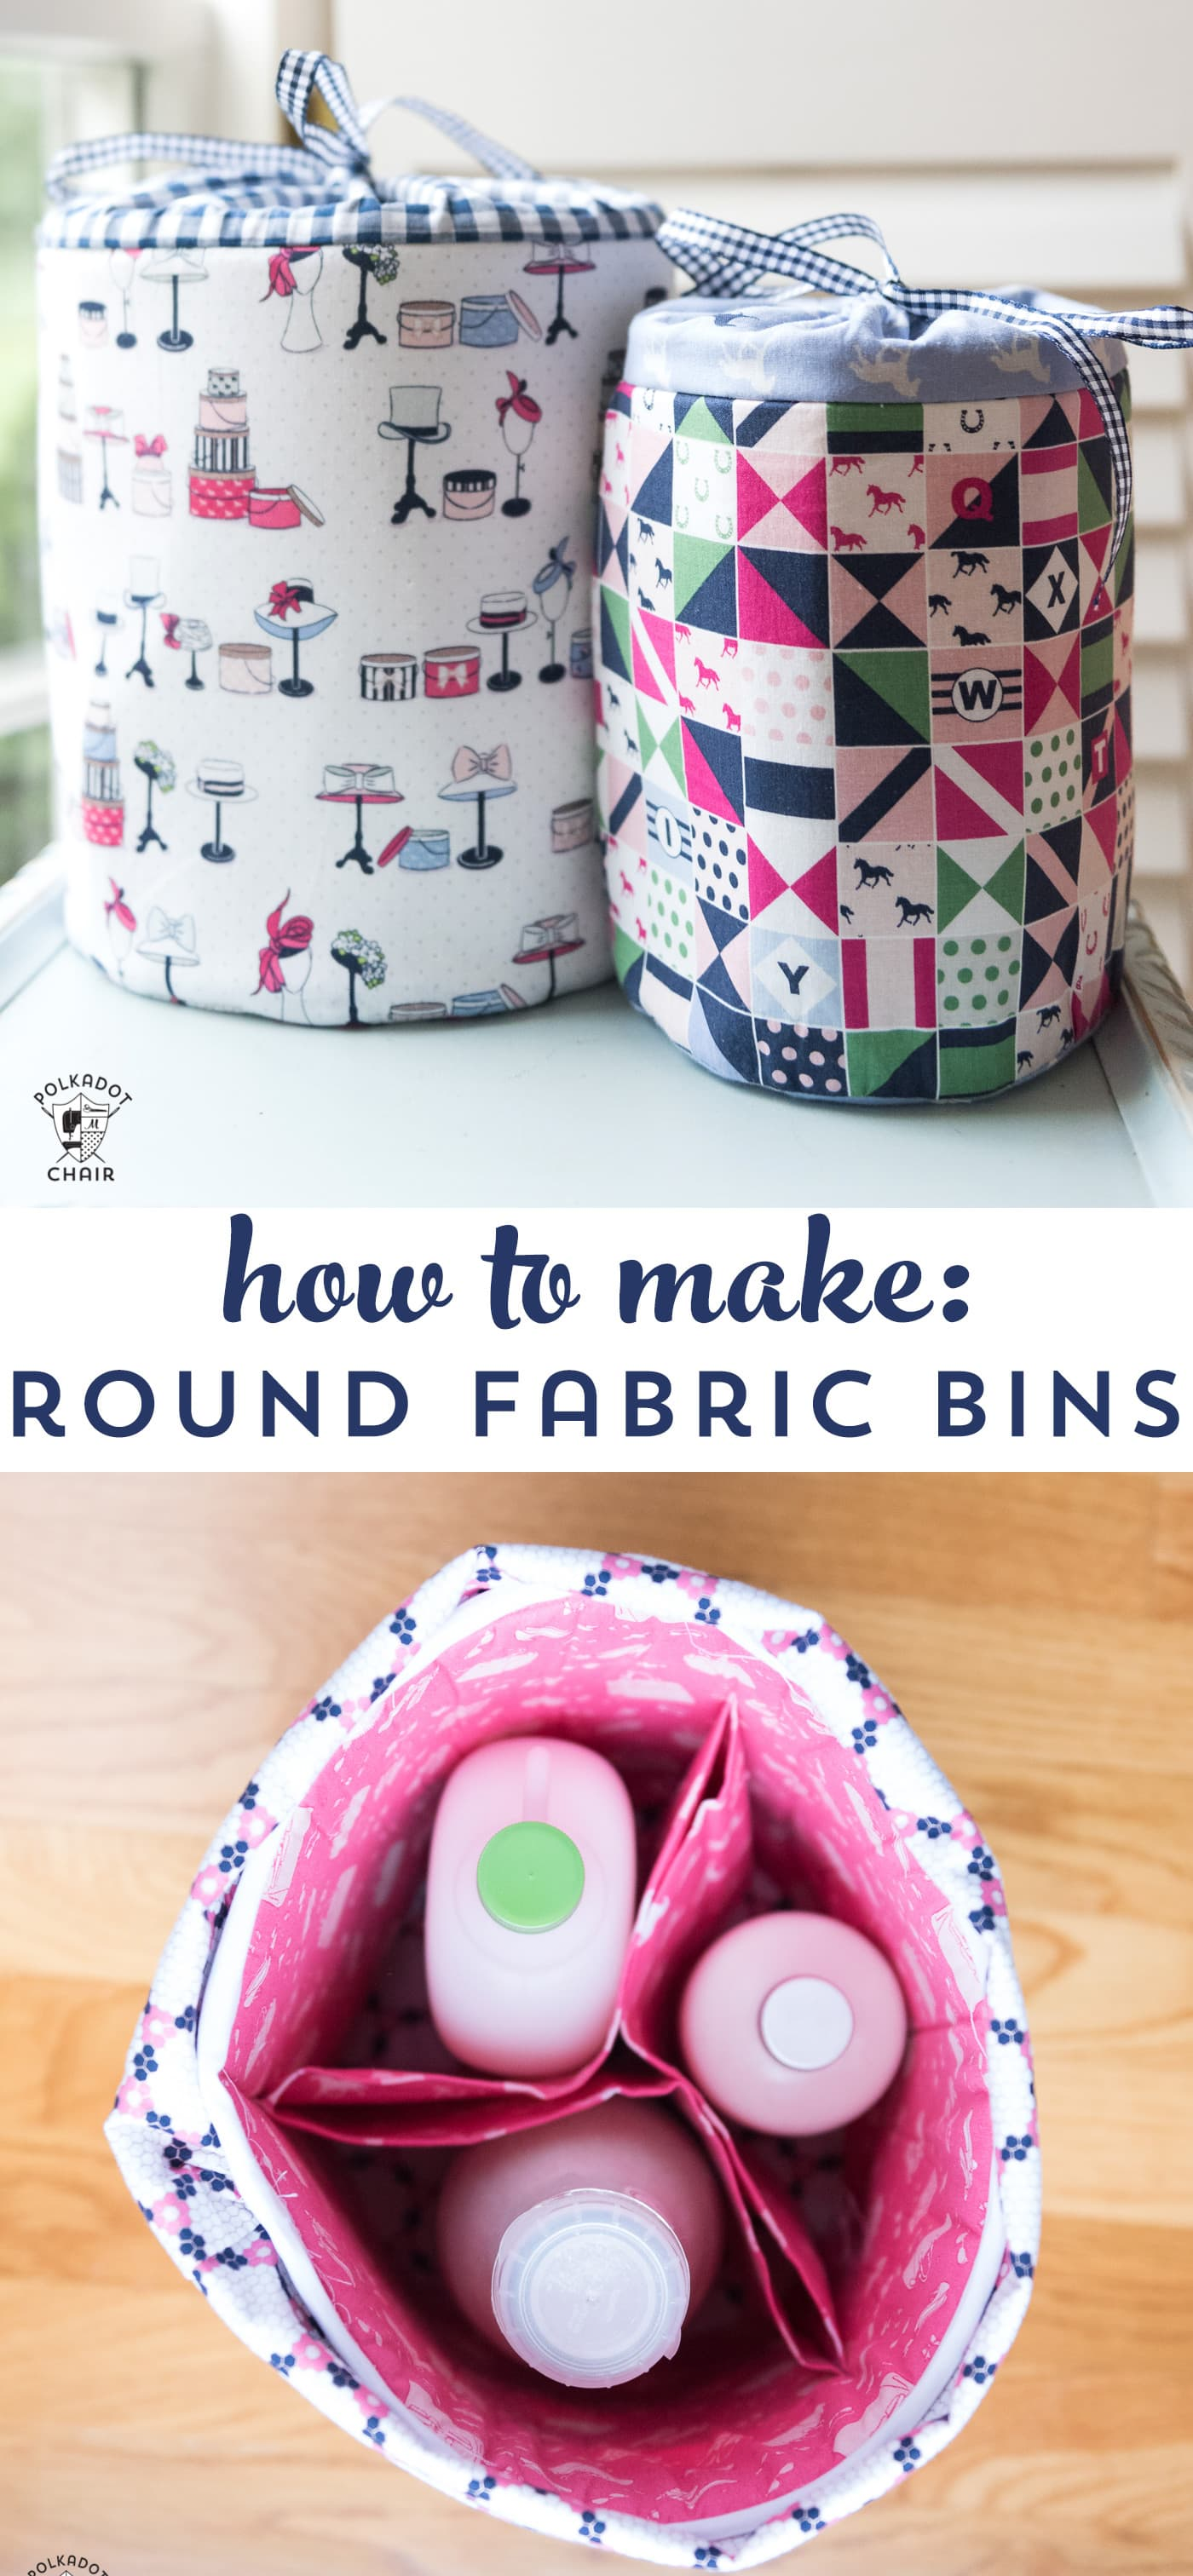 DIY Fabric Storage Bins Sewing Pattern  The Polka Dot Chair